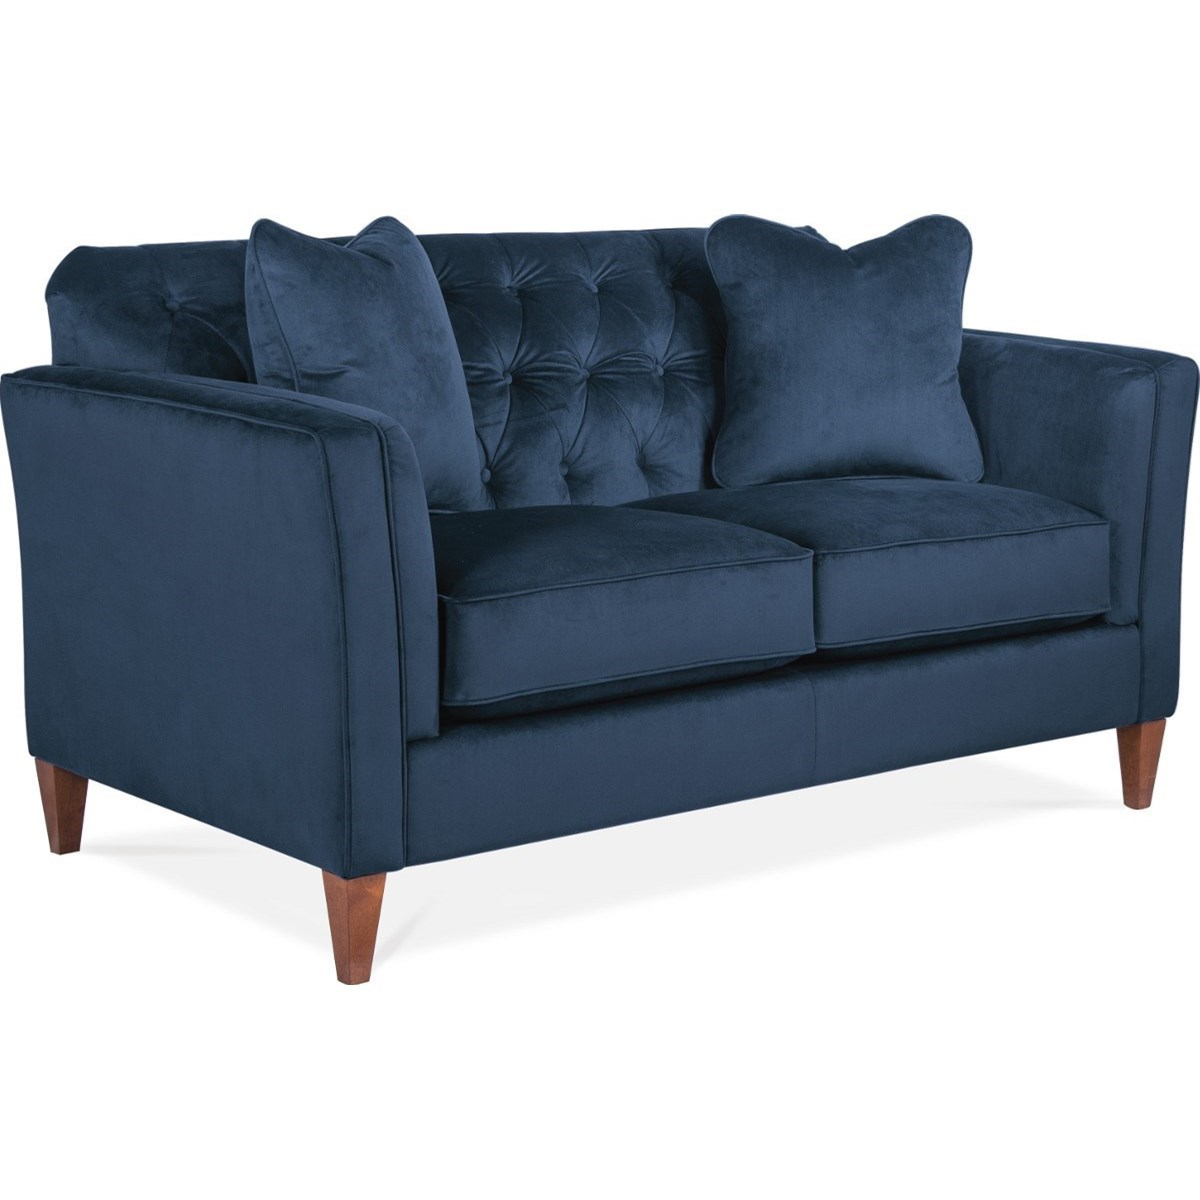 Alexandria Premier Loveseat by La-Z-Boy at Jordan's Home Furnishings